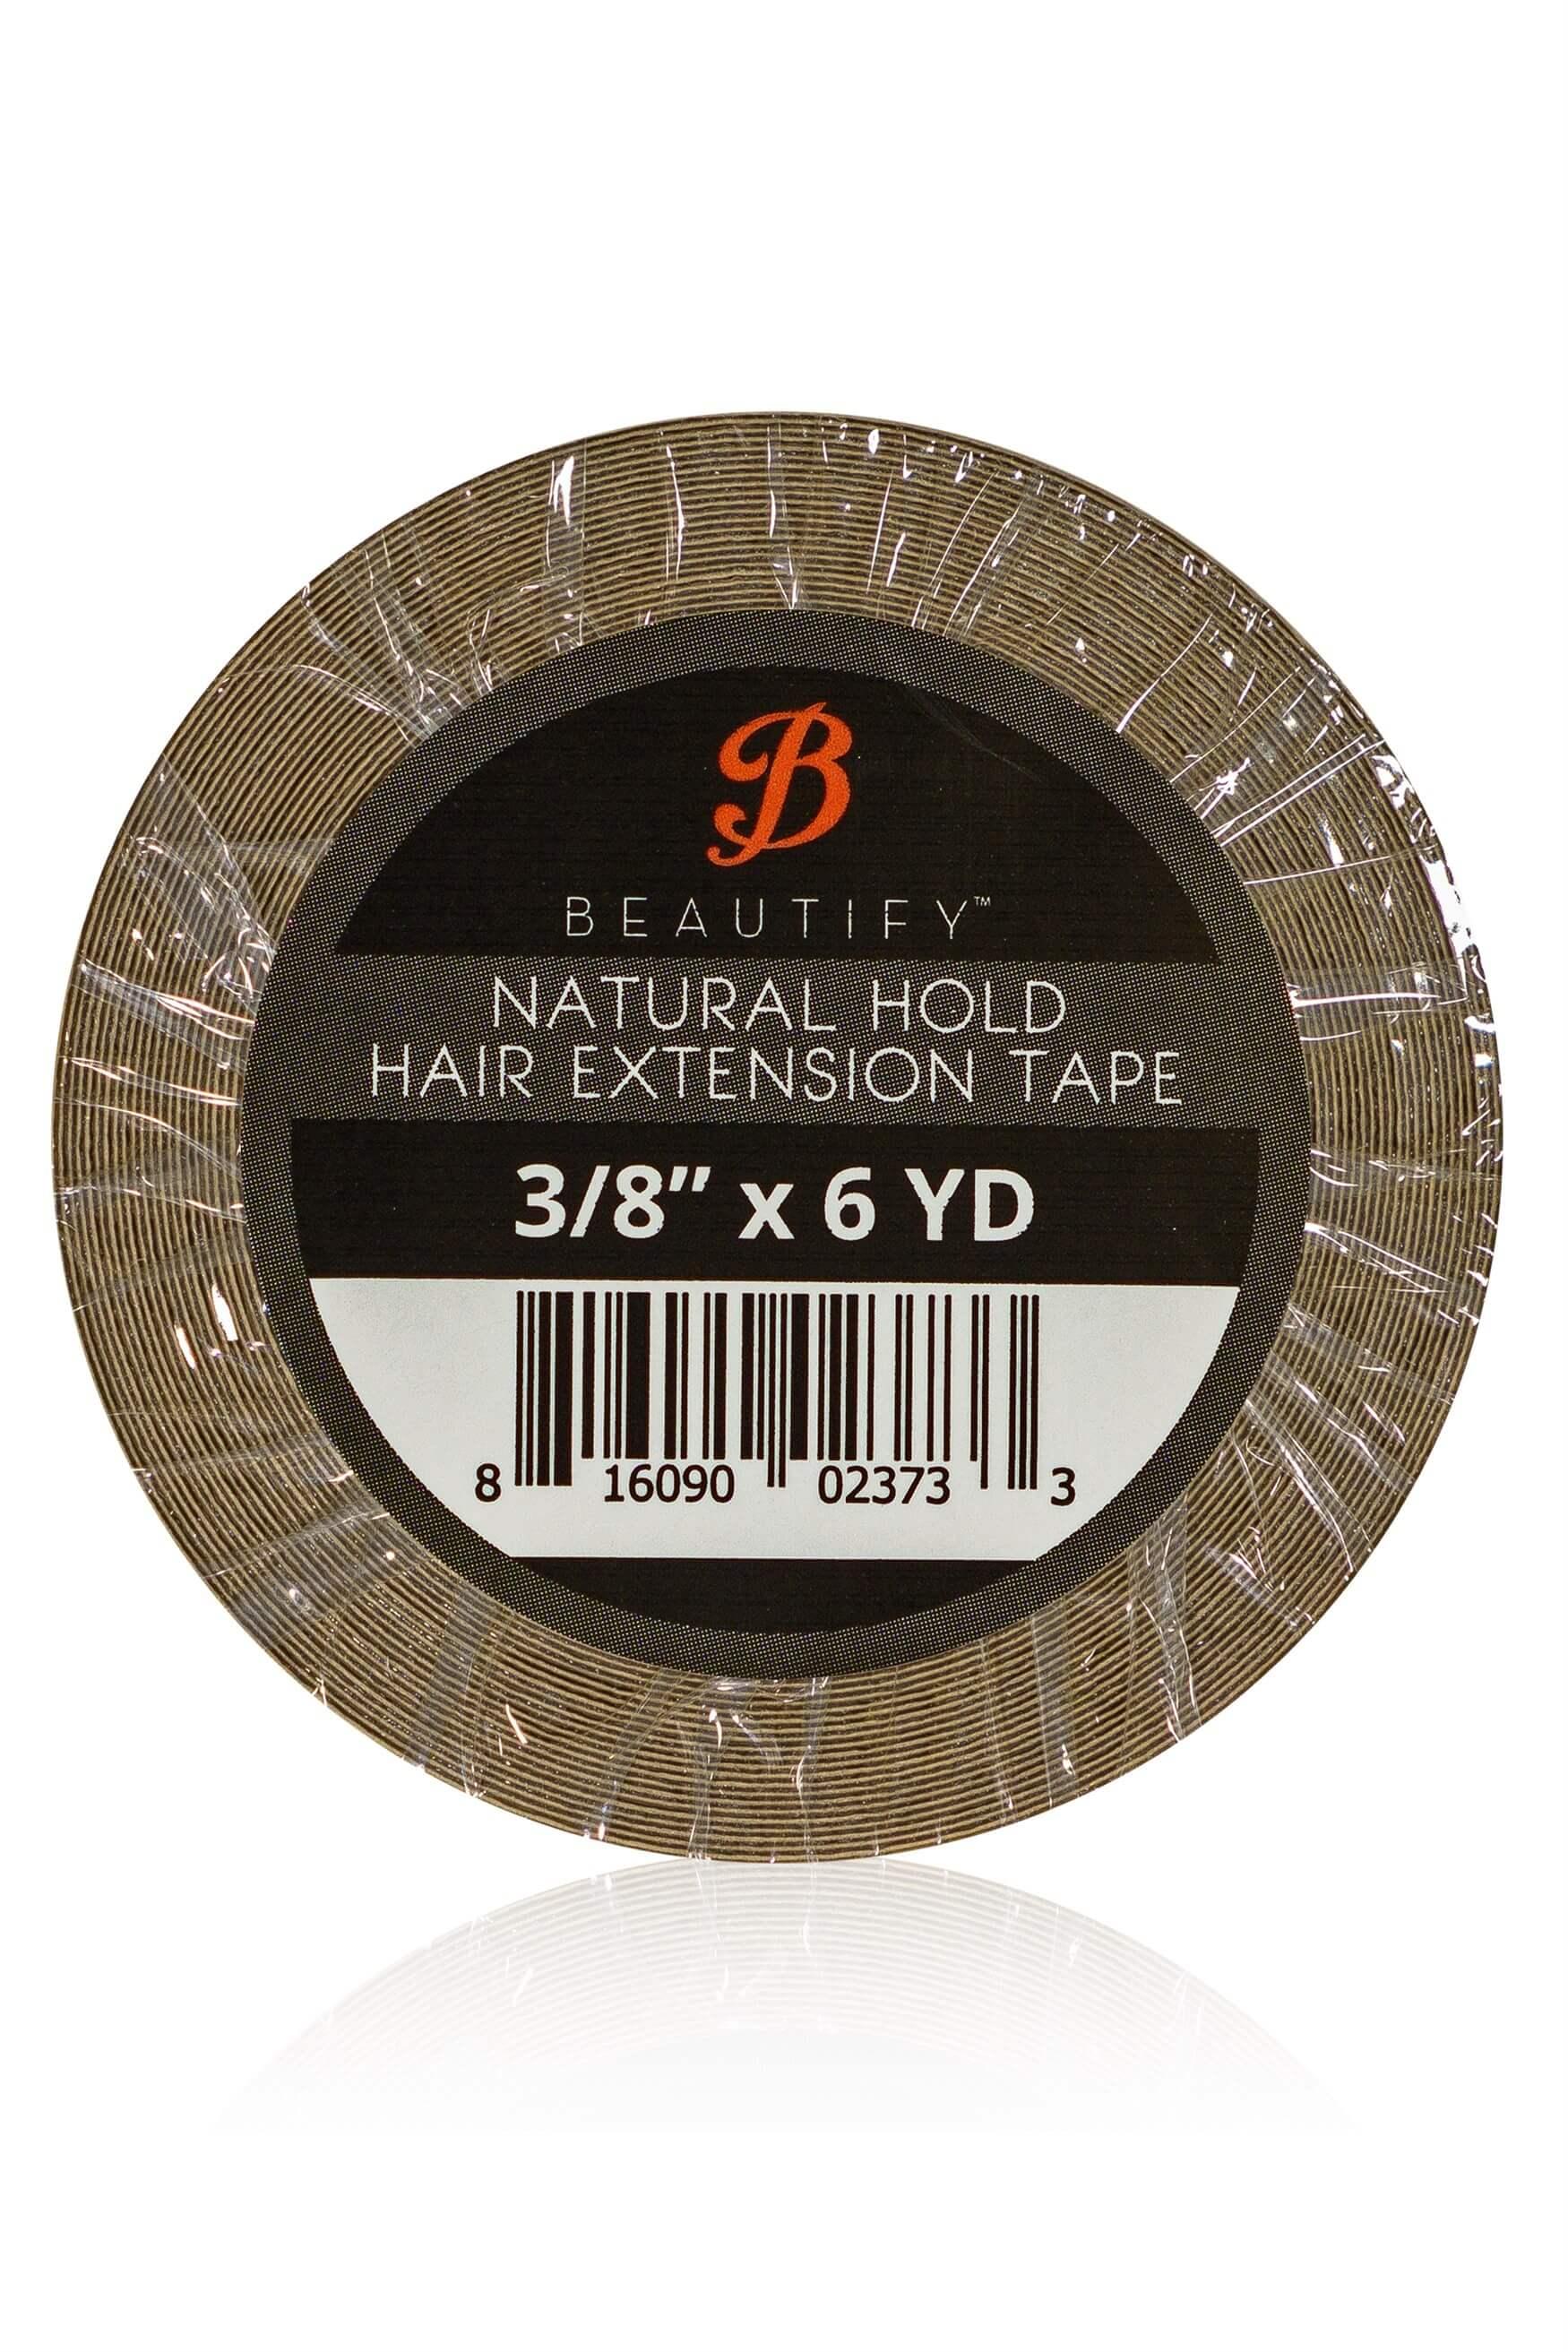 Walker Tape BEAUTIFY Natural Hold Hair Extension - Bant Kaynak Bandı Rulo 3/8'' x 6 yds (1 cm x 5,48m)